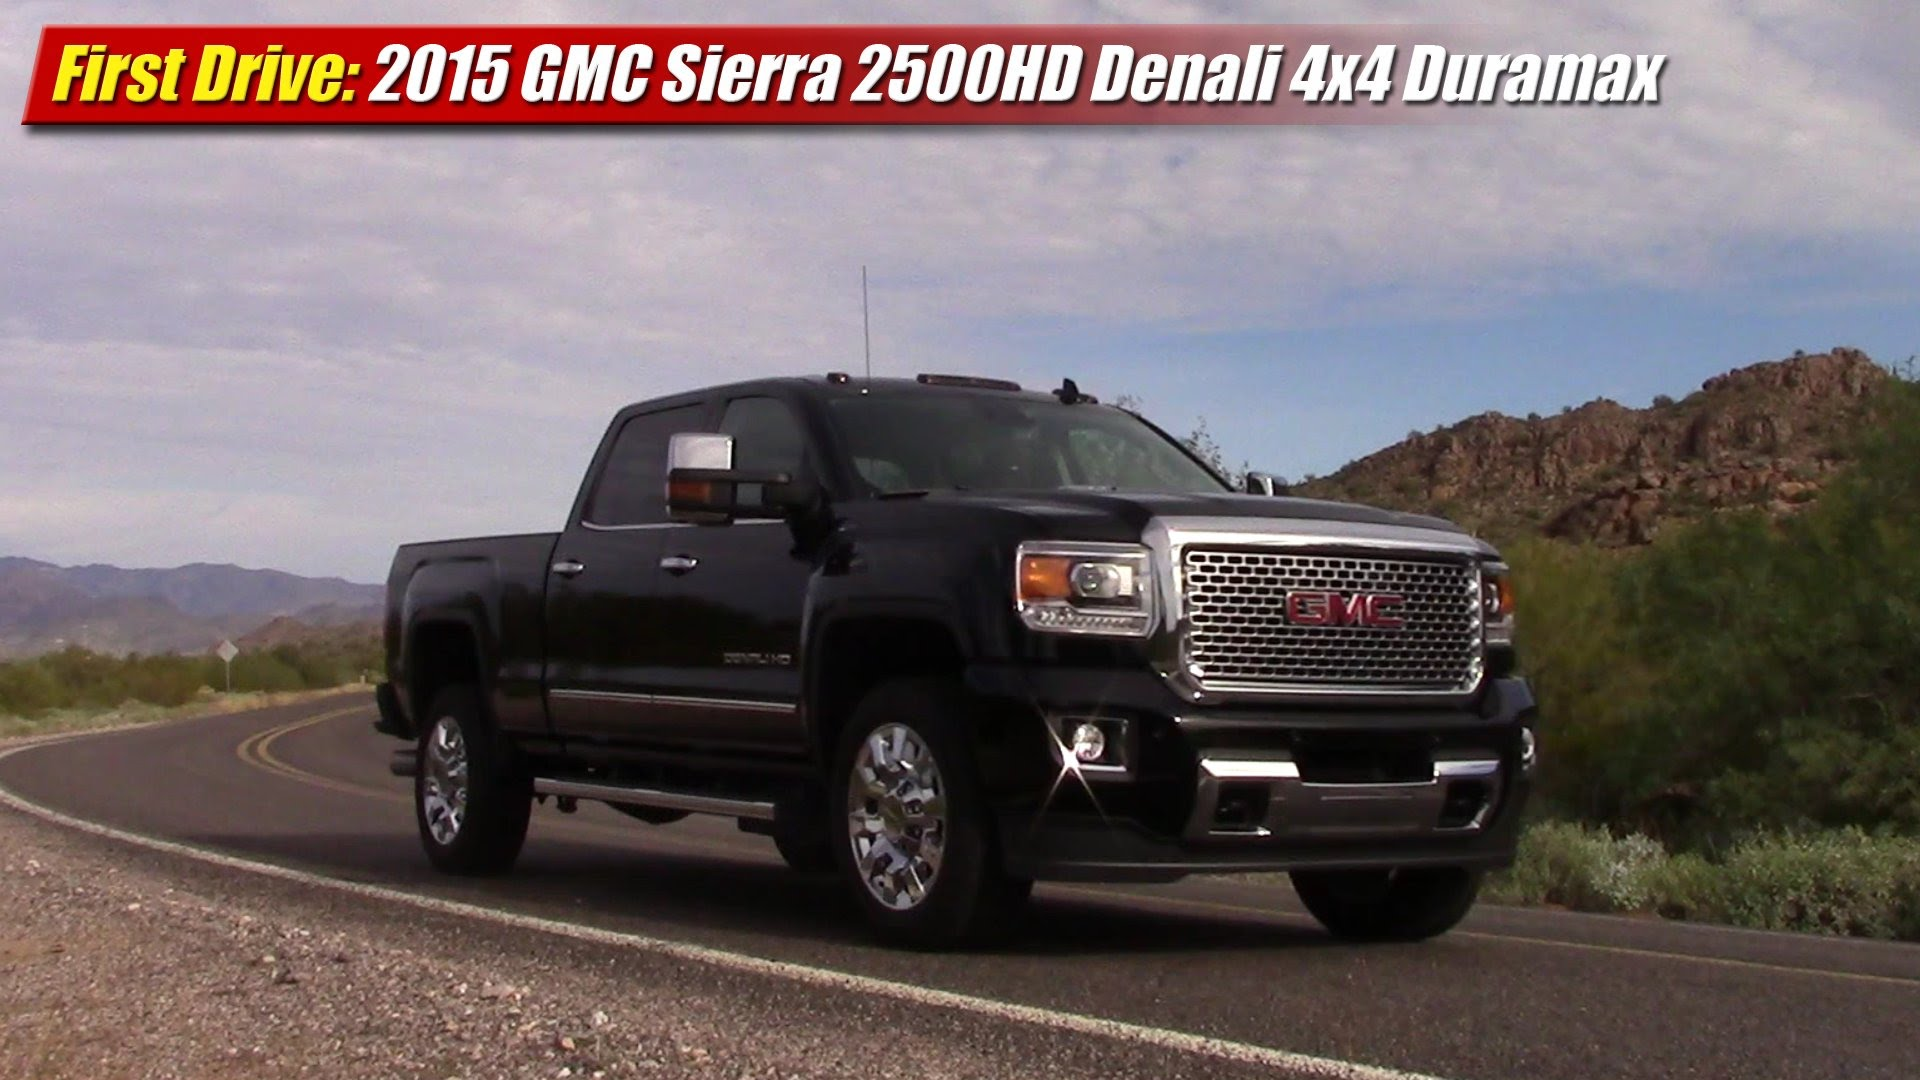 first drive 2015 gmc sierra 2500hd 4x4 duramax testdriven tv 2015 GMC 2500HD Duramax Black